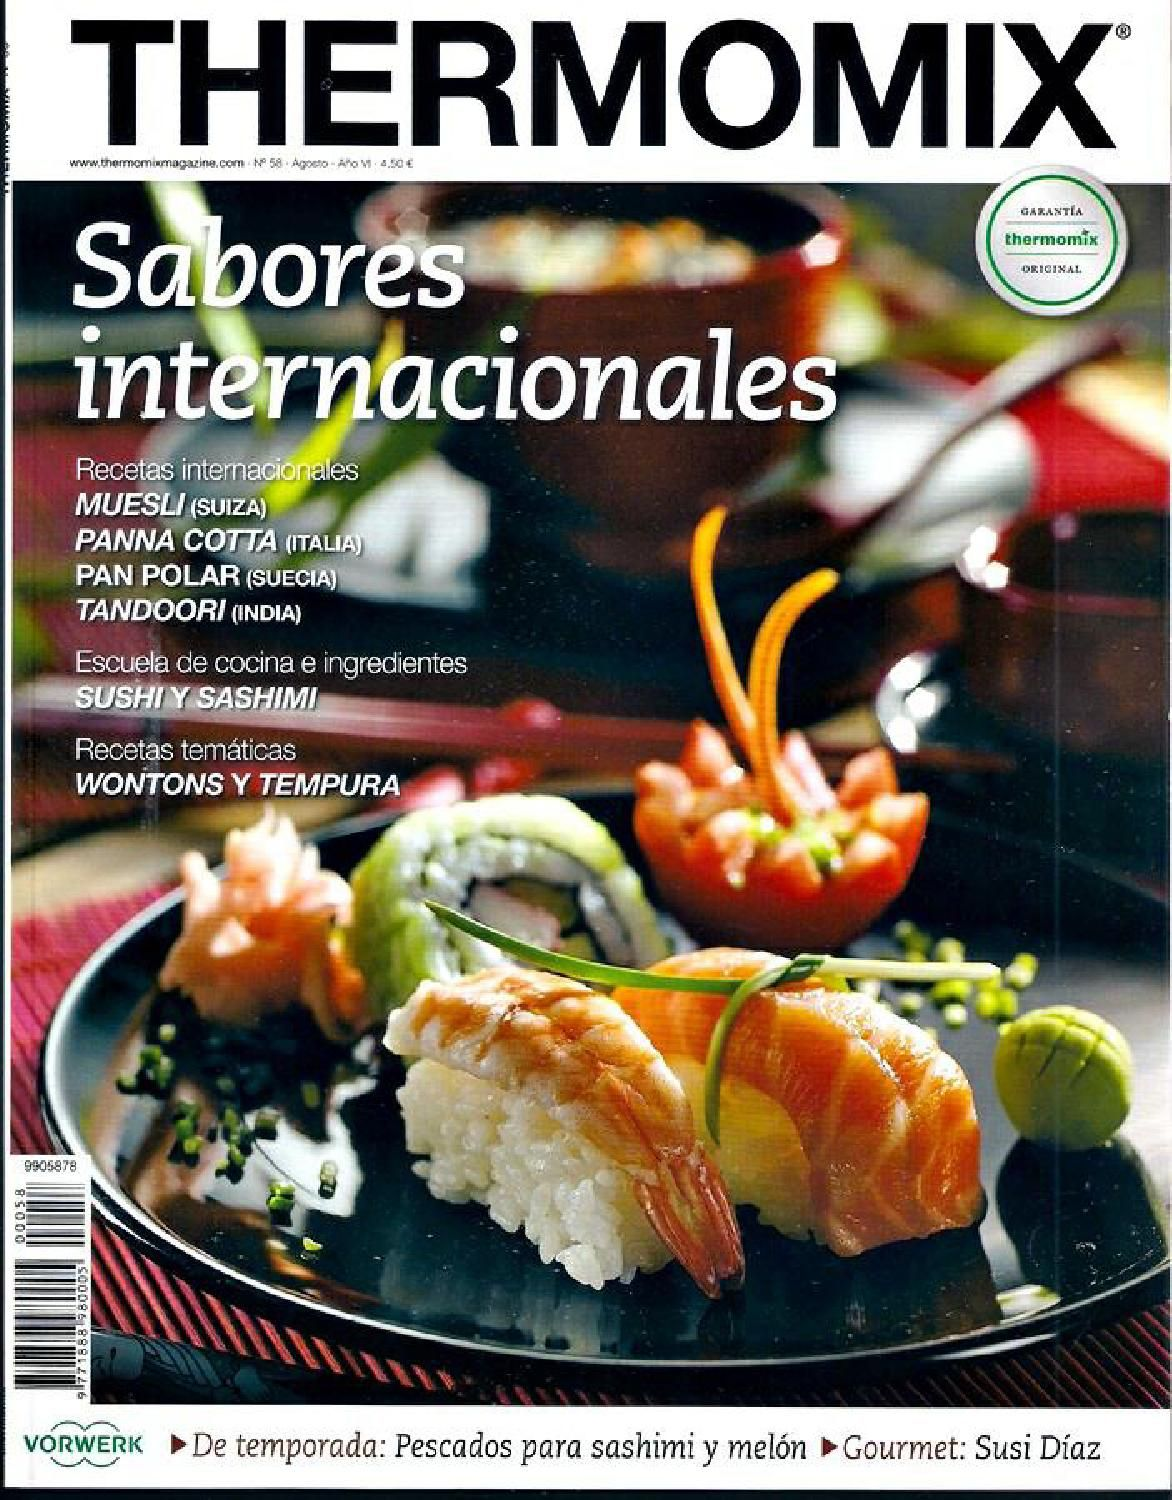 Libros Electronicos Thermomix Revista Thermomix Nº58 Sabores Internacionales By Argent